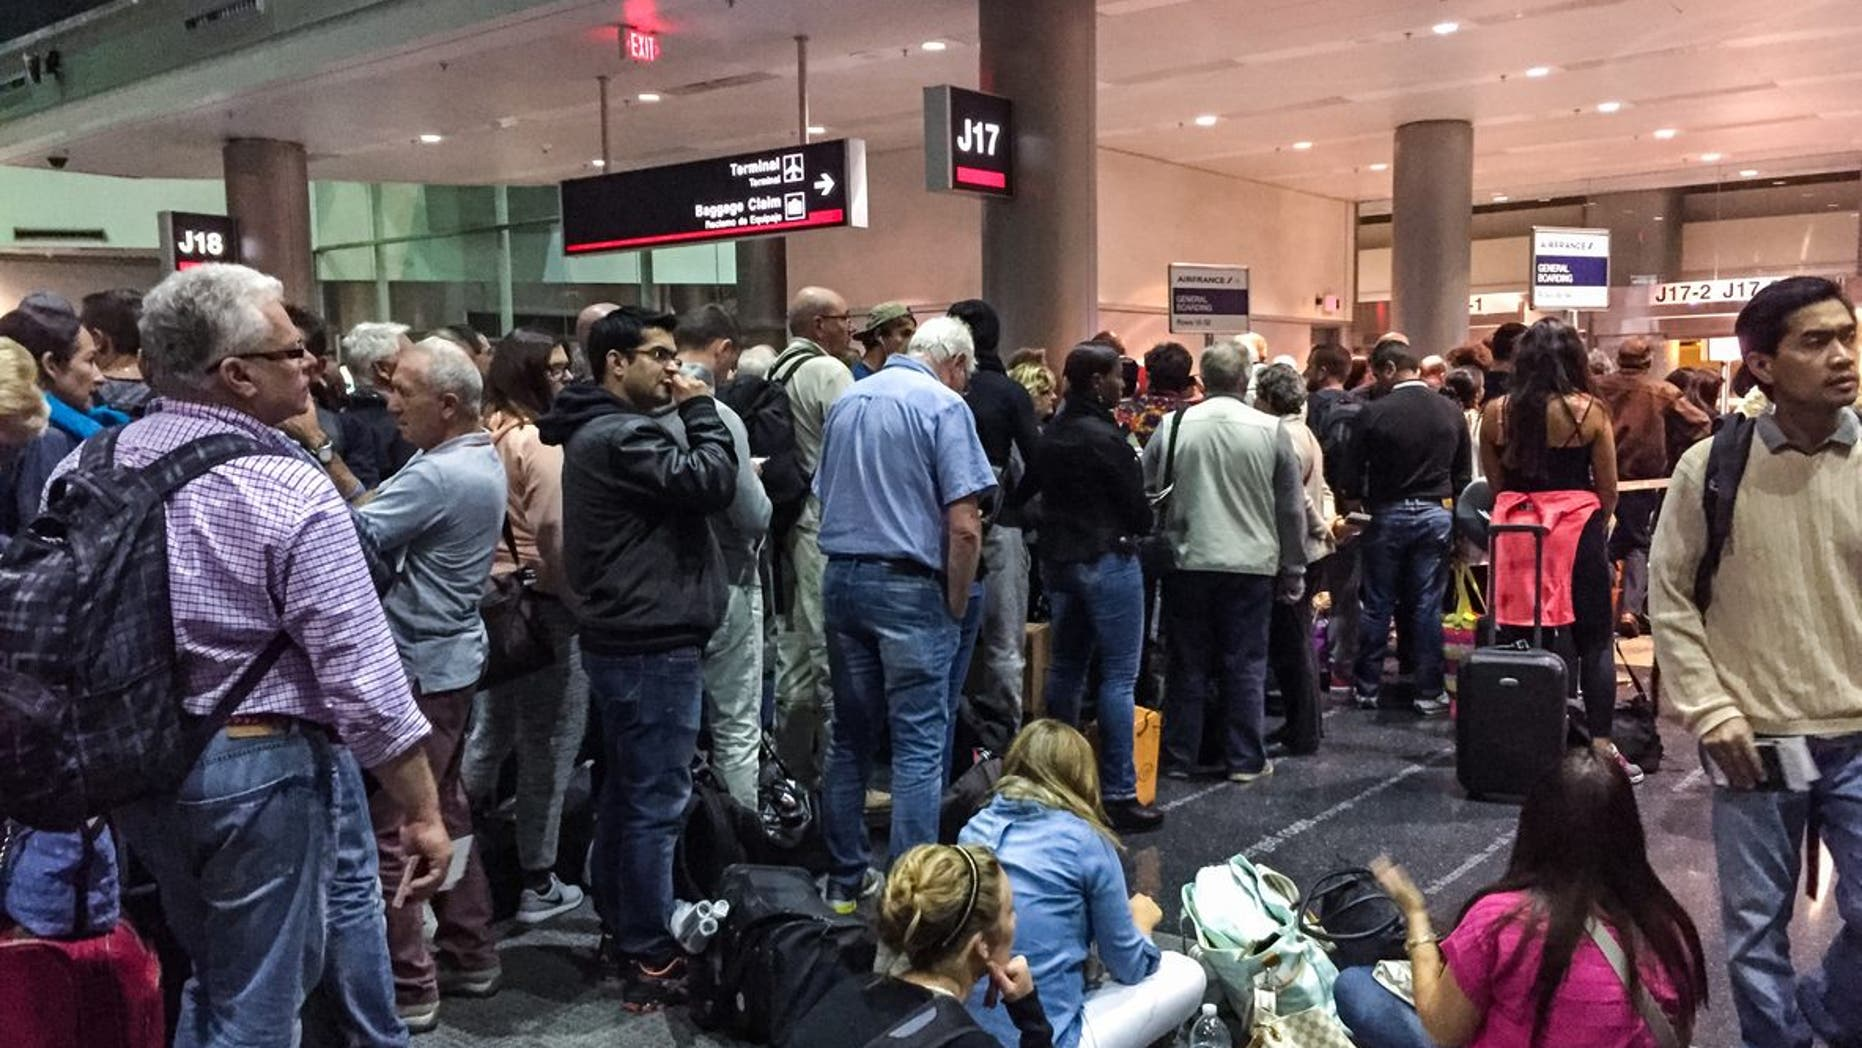 Miami, USA  - January 30, 2015: Passengers waiting at the gate for boarding on Air France flight to Paris, Miami Airport